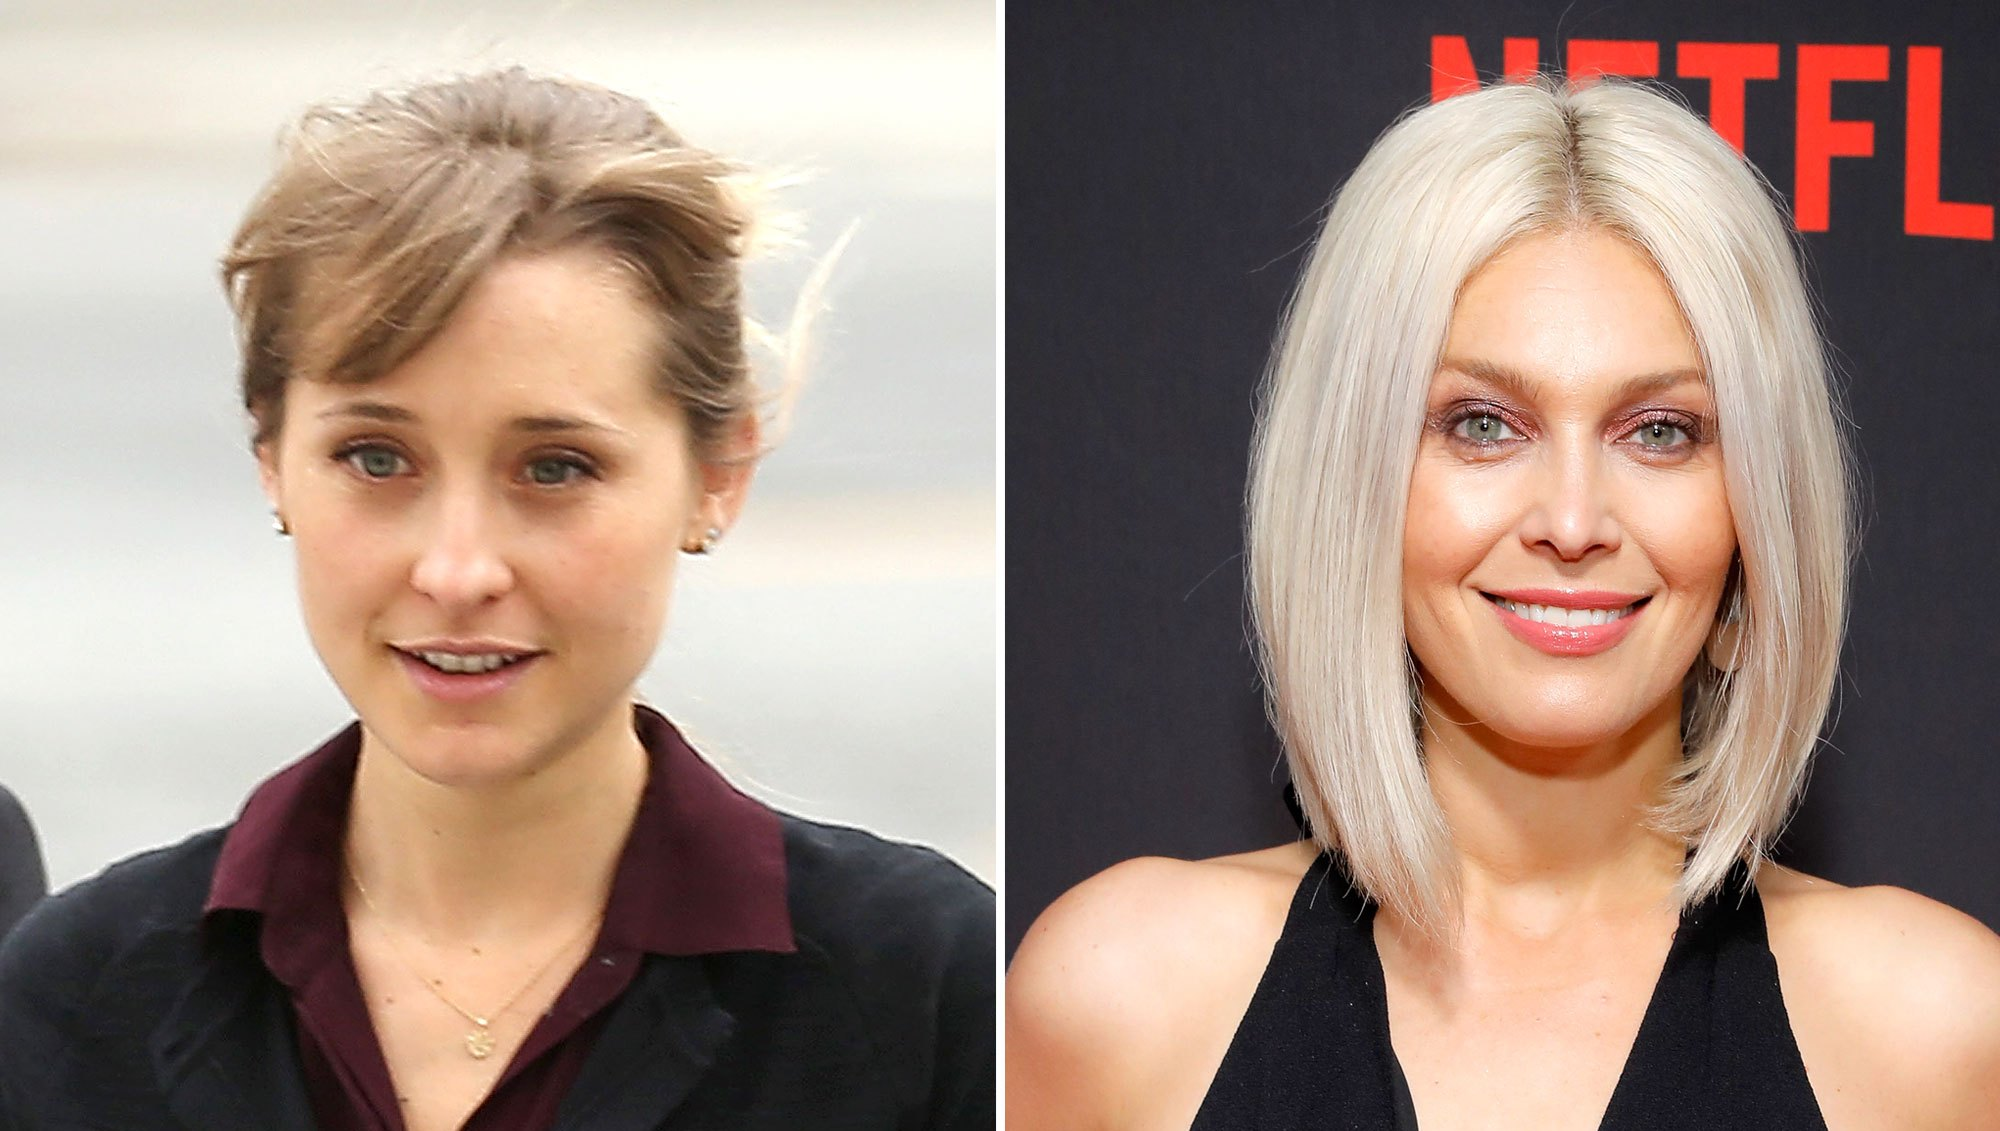 Allison Mack's 'Smallville' Costar Alaina Huffman Was 'Invited to Several' NXIVM Sex Cult Meetings: 'There Was Always a Little Something Off'